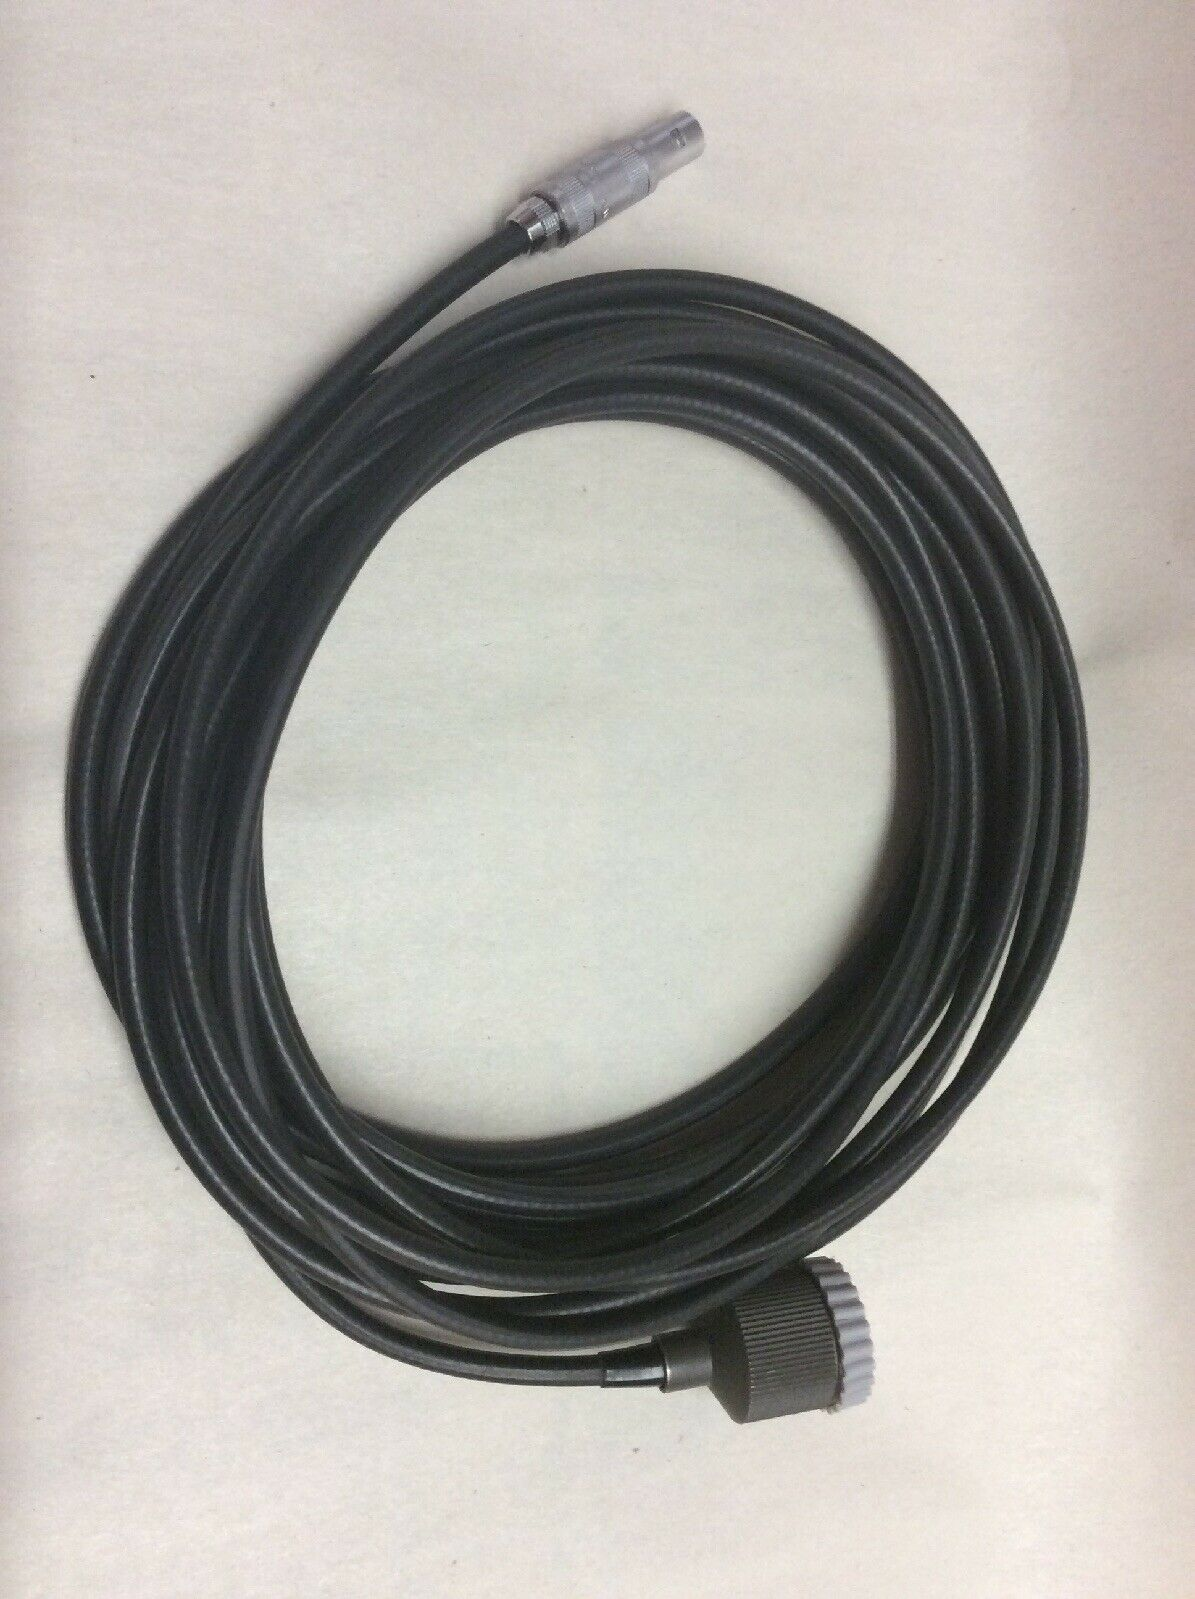 12' Schoeps Microphone - Lemo 0 Cable